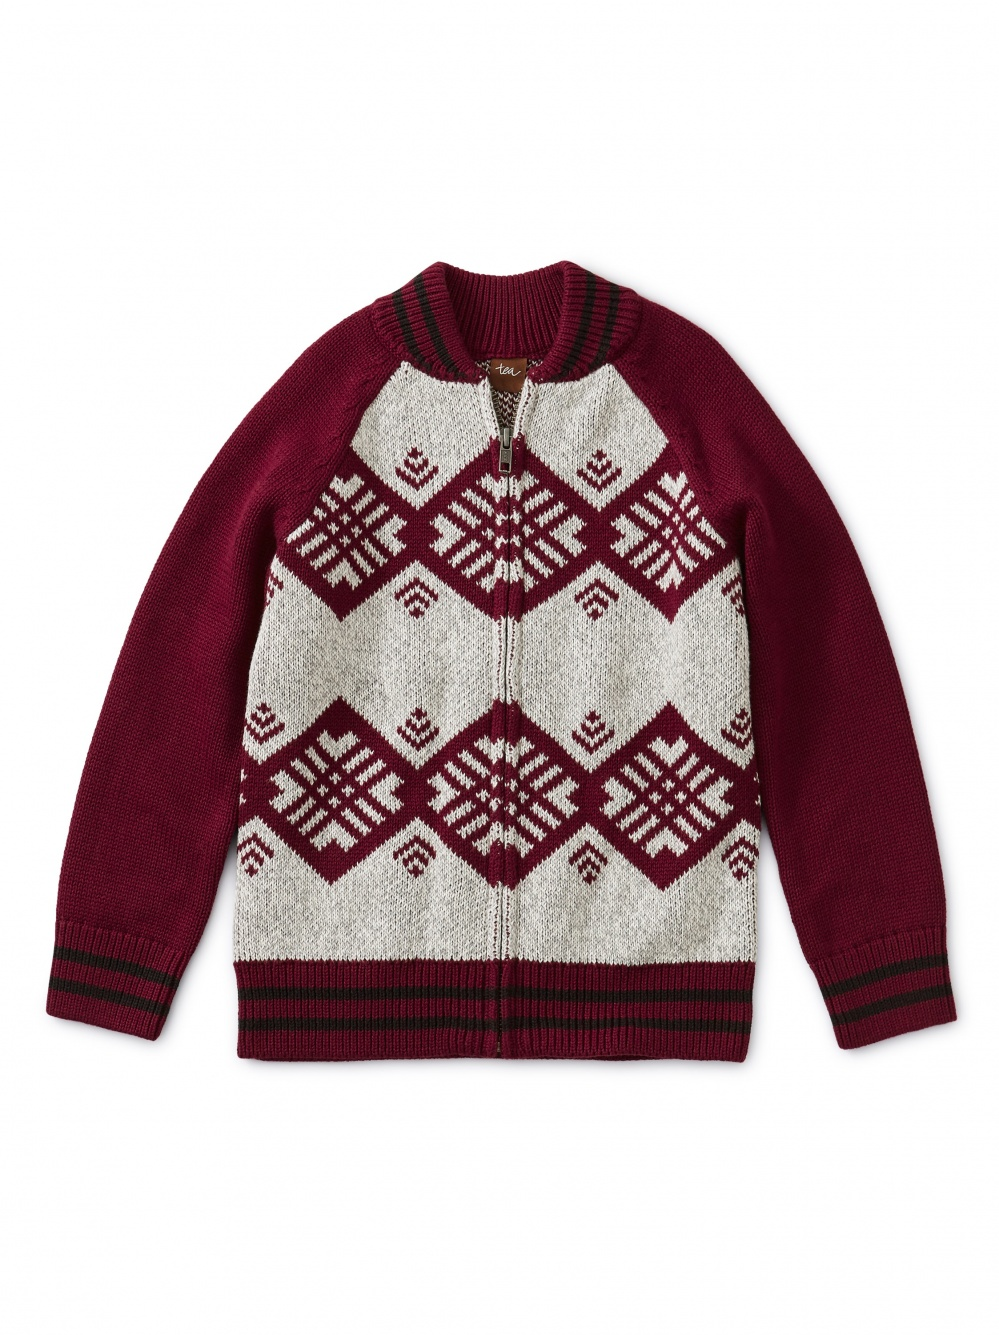 Family Chimmi Choden Cardigan